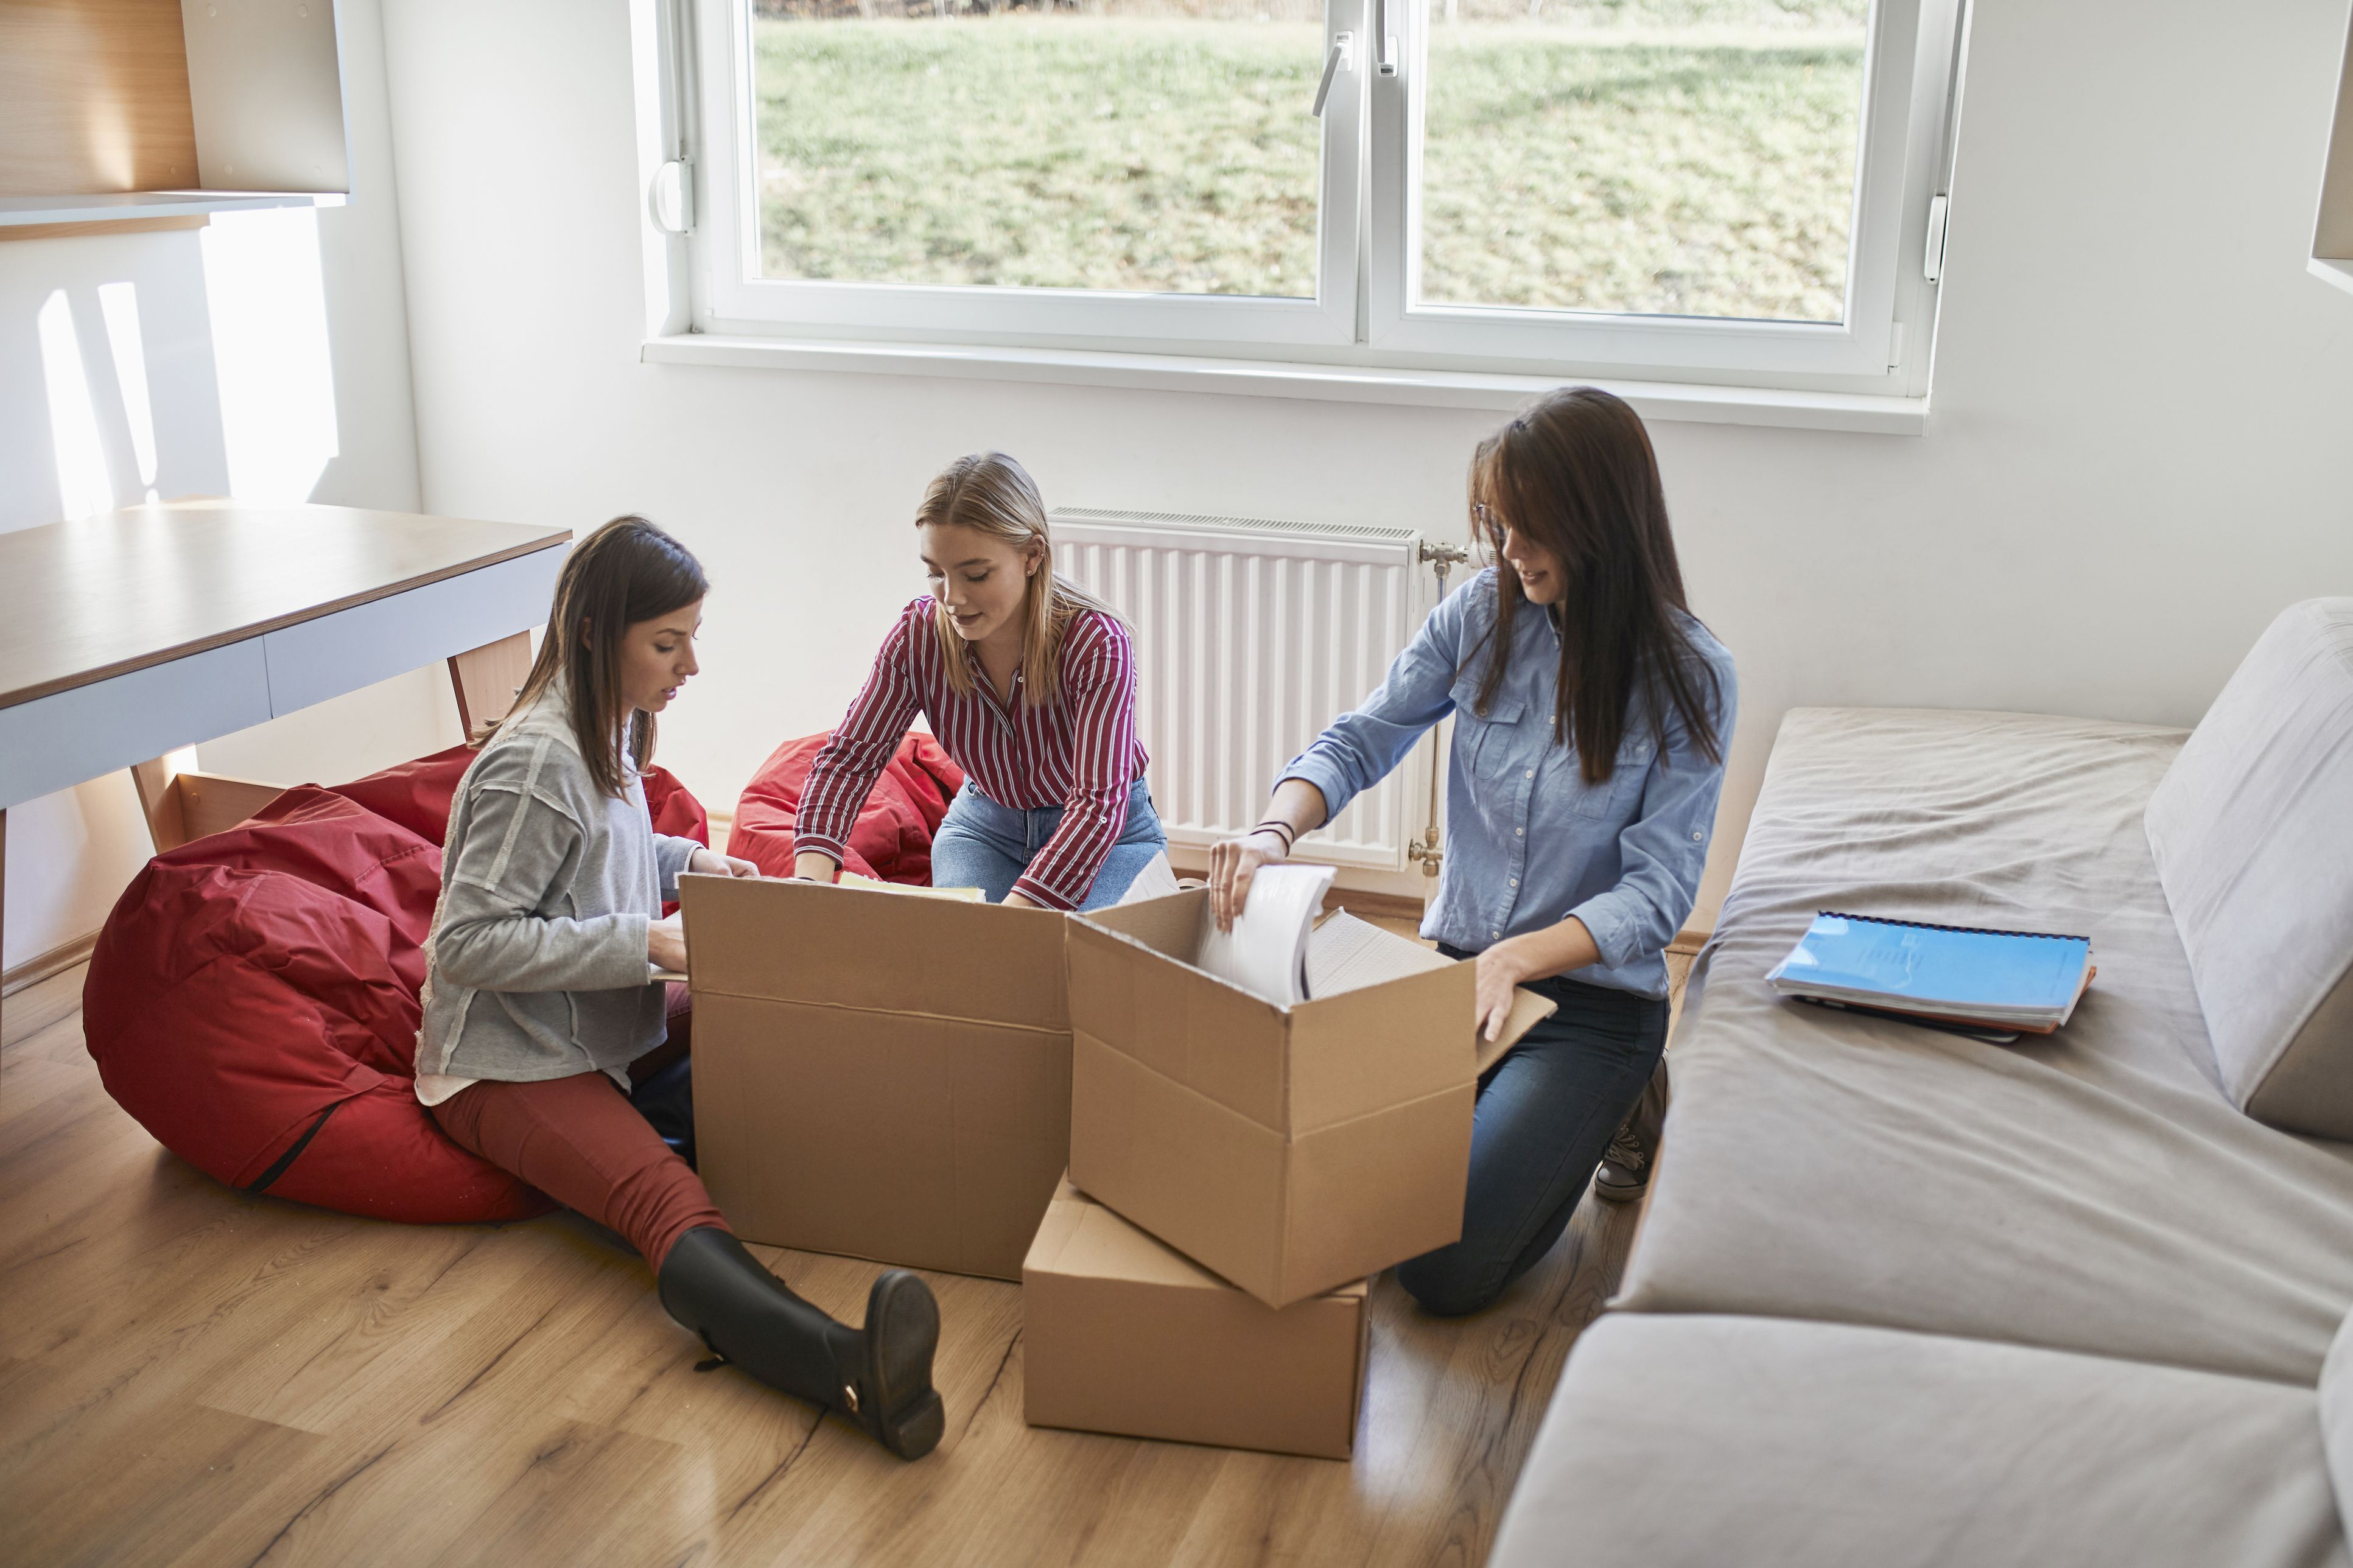 Three young women unpacking cardboard boxes in a room